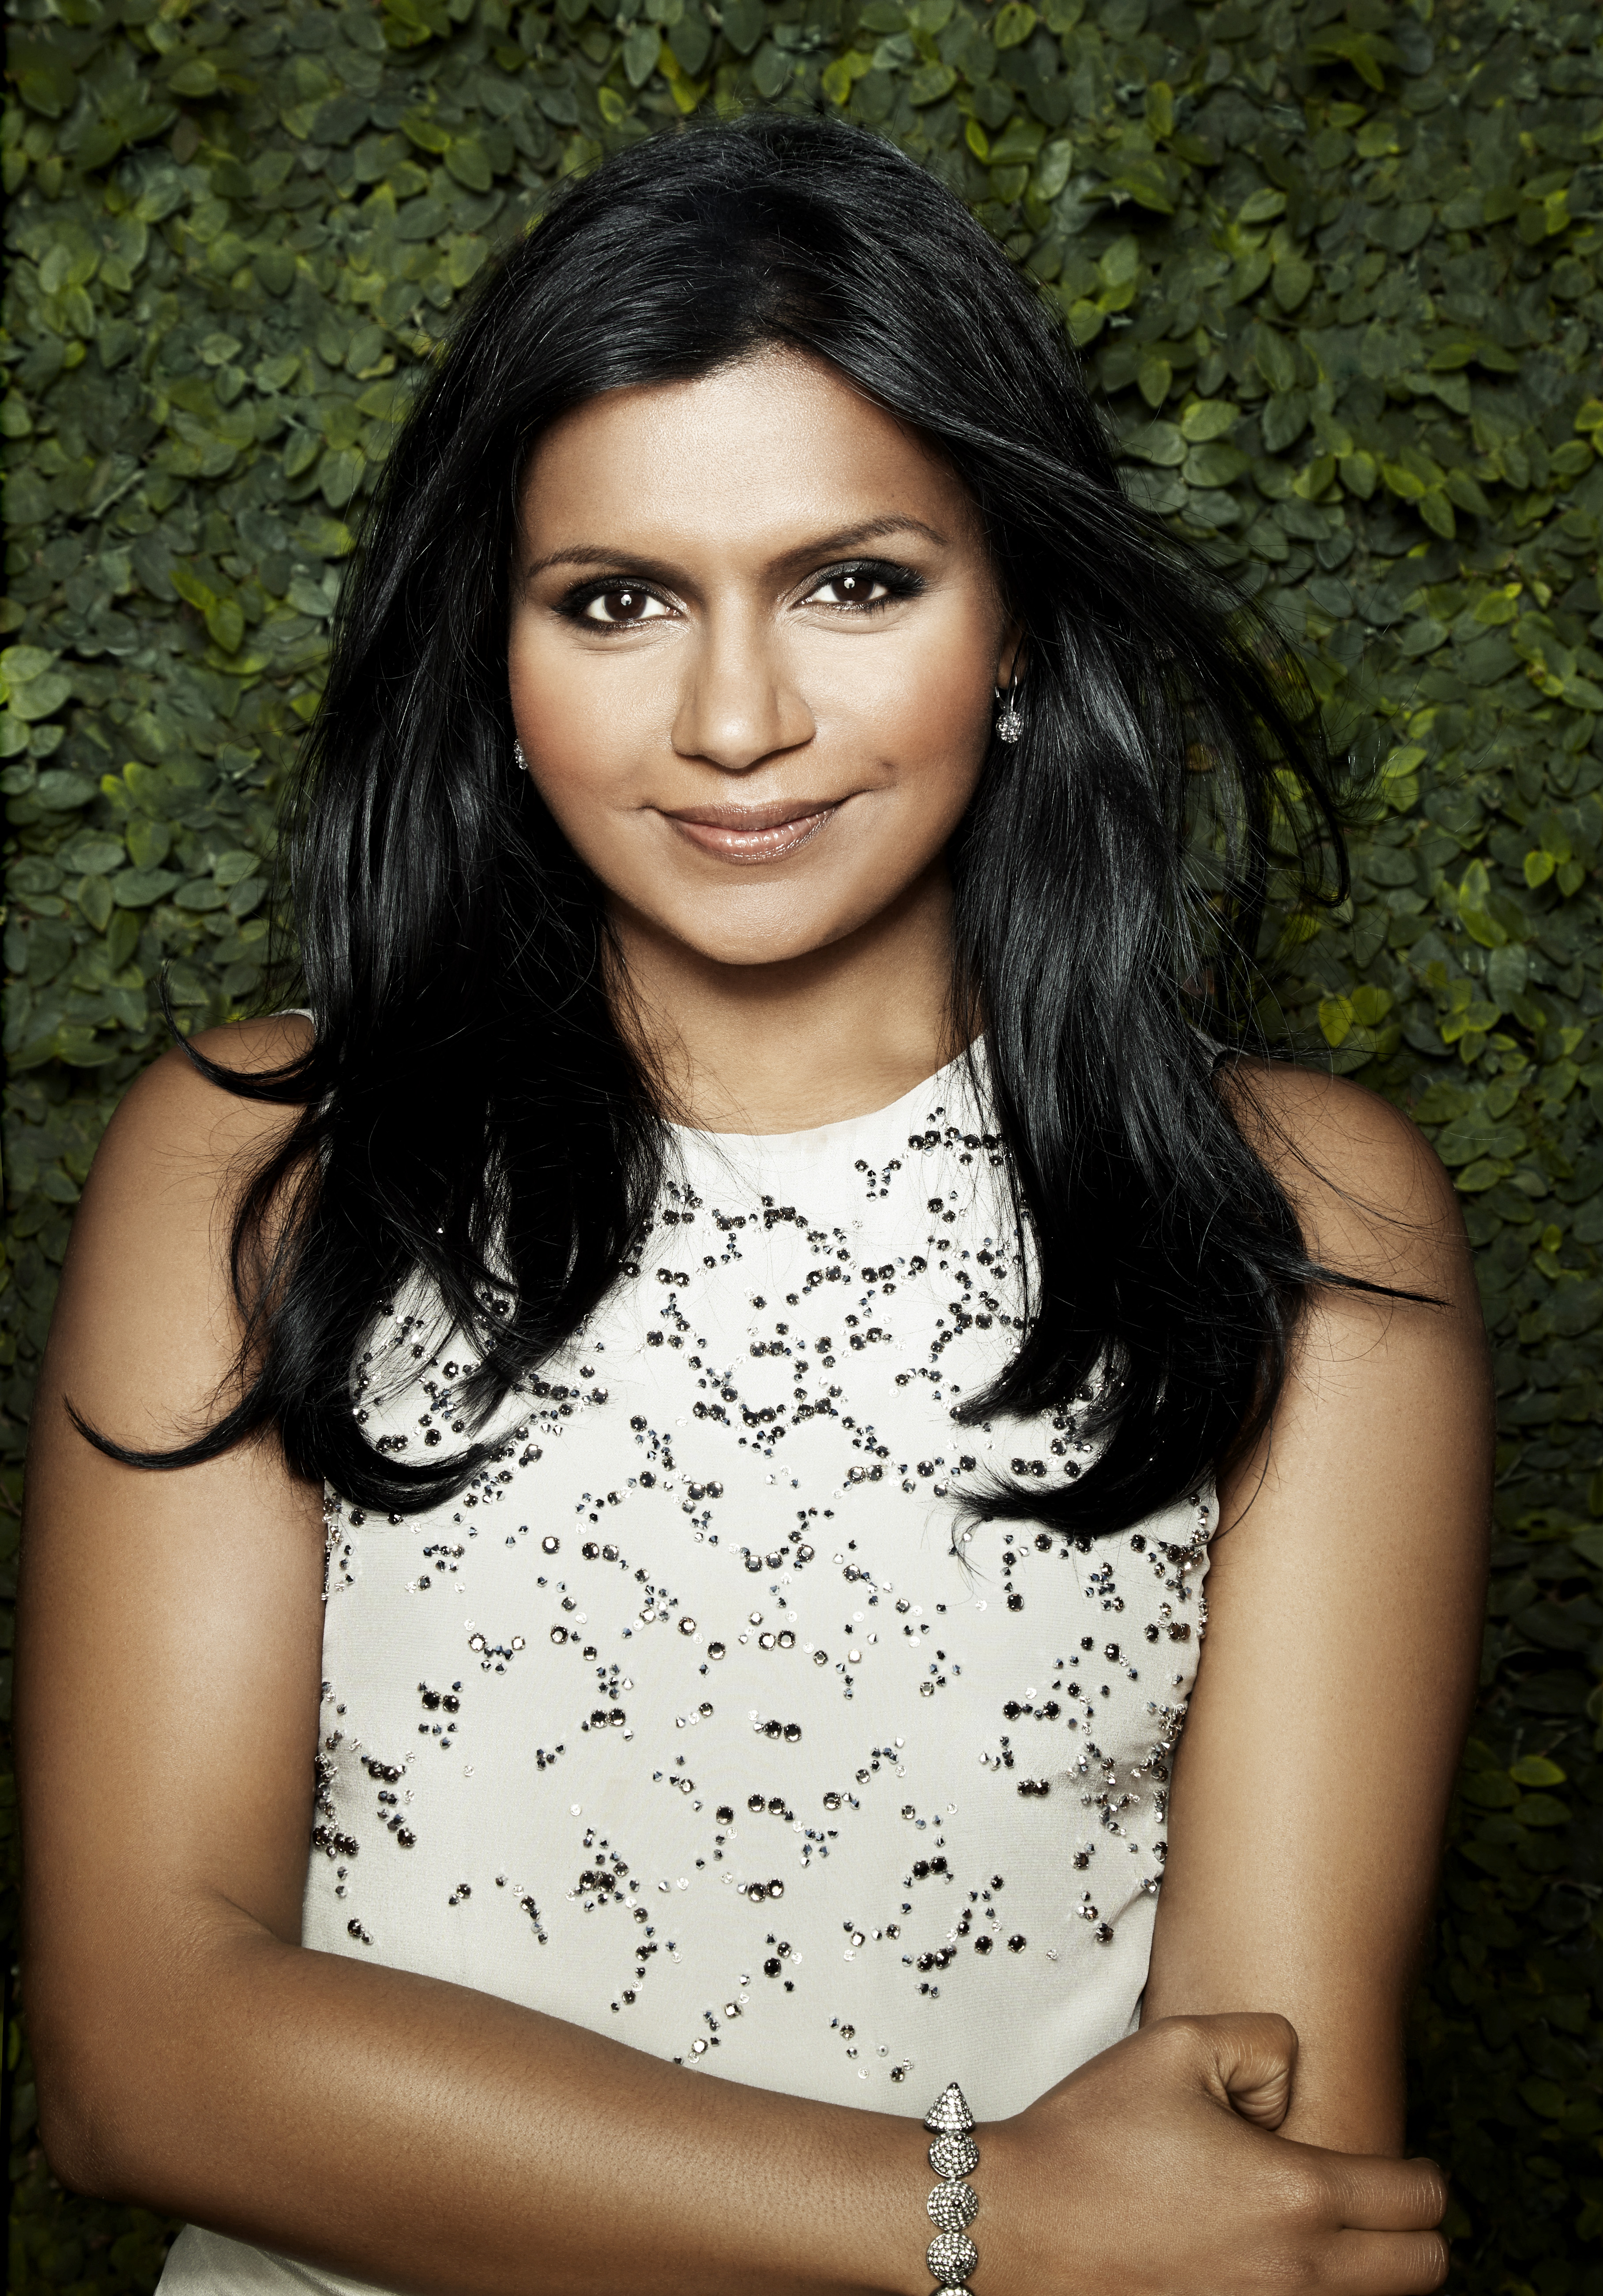 Mindy Kaling AuthorPhoto2015 credit Emily Shur-2